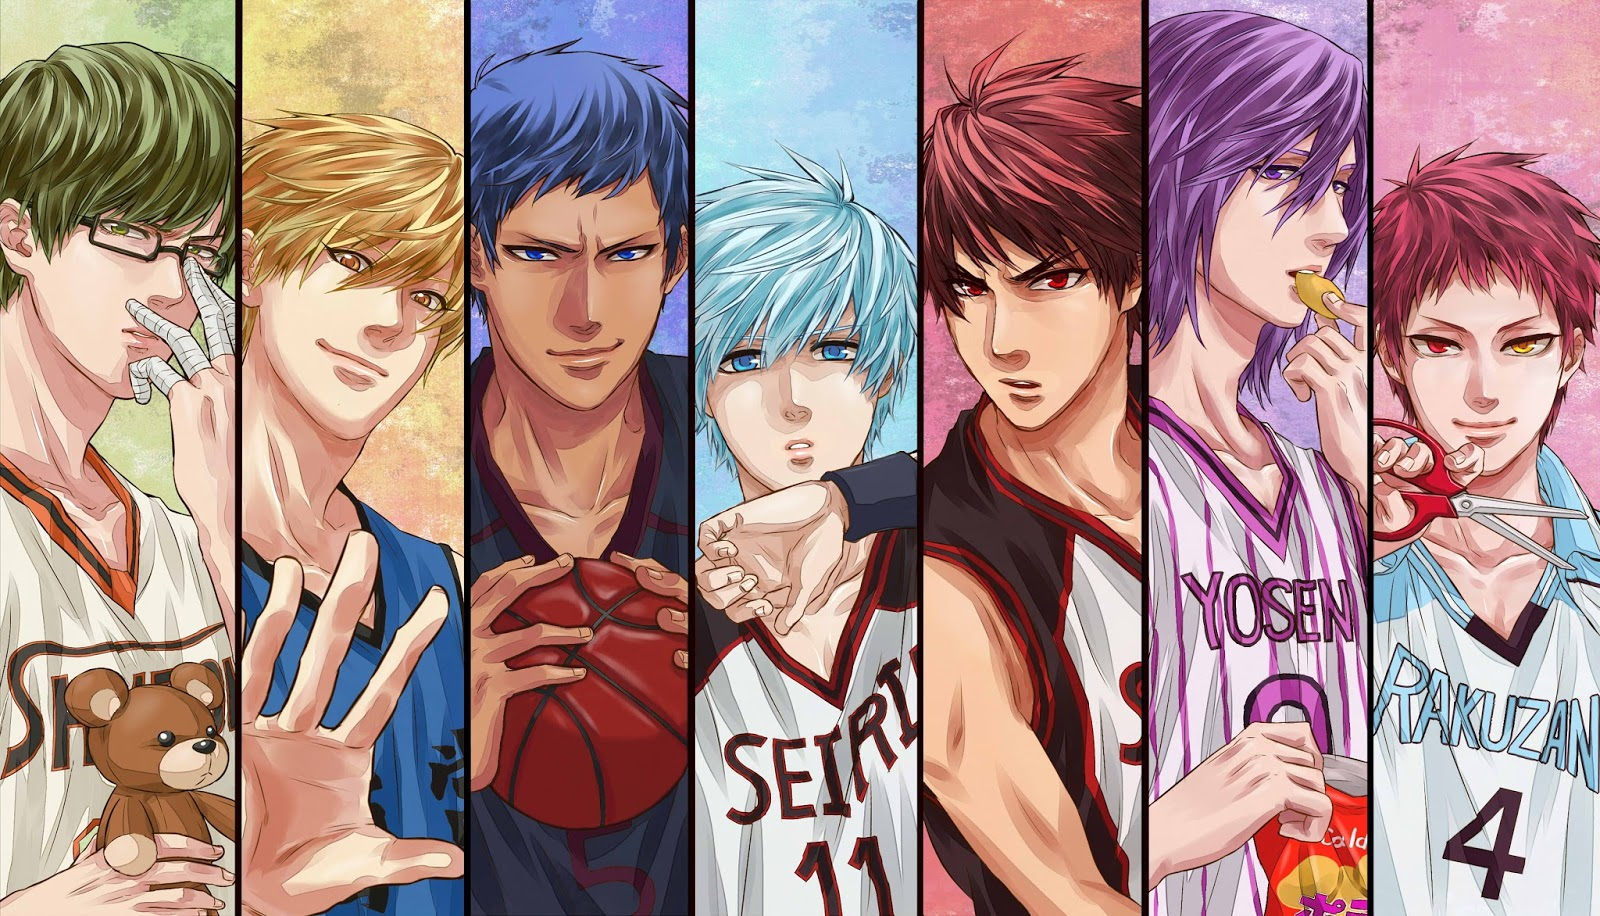 Kuroko No Basket Season 3 [Streaming] Subtitle Indonesia